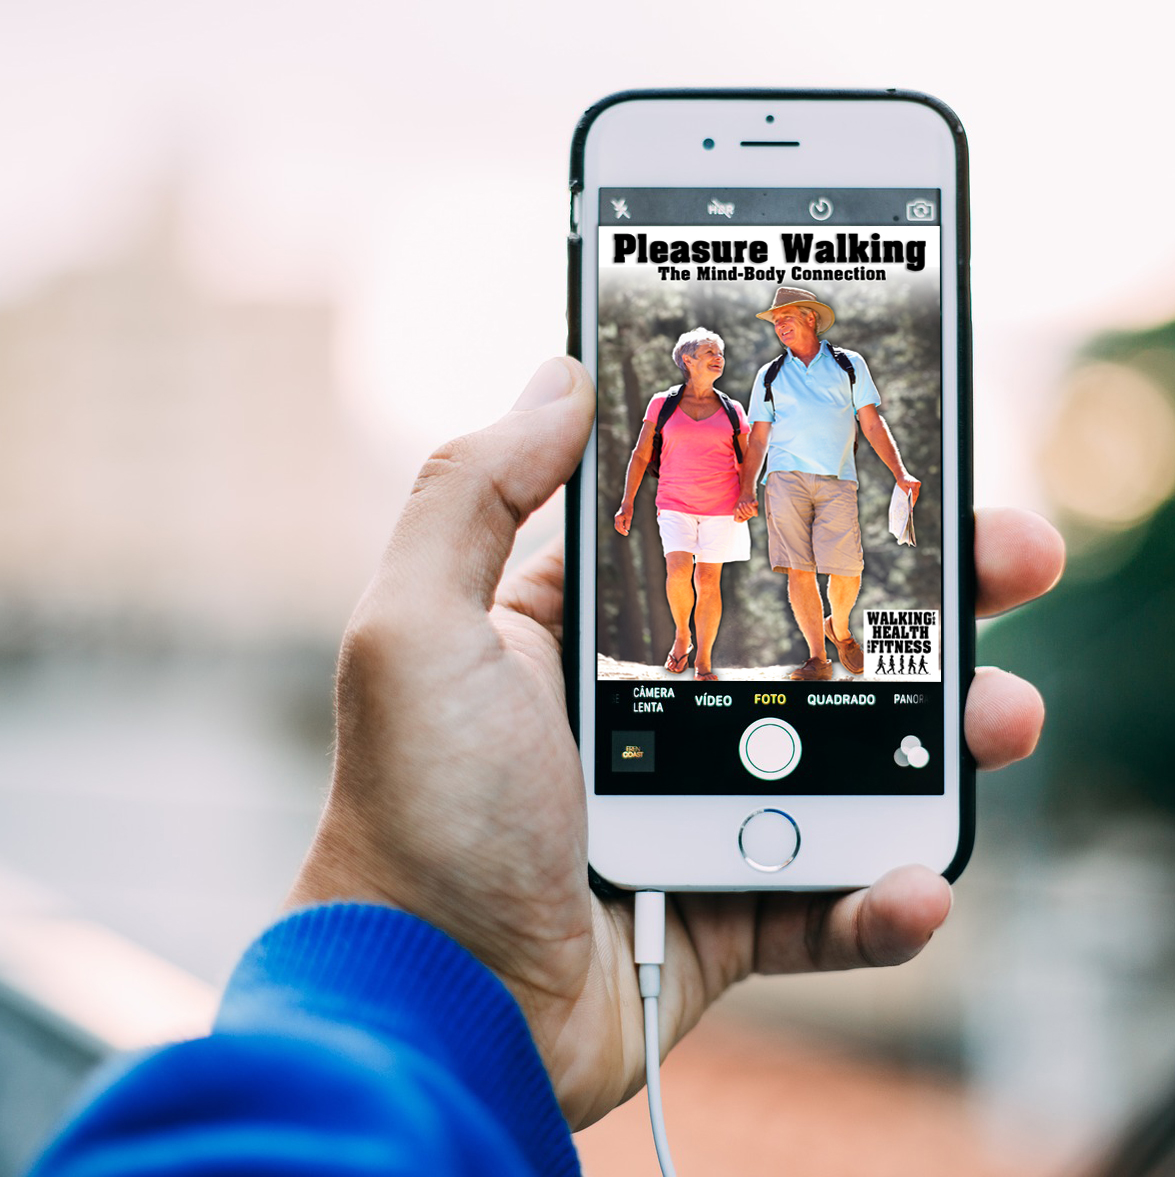 pleasure-walking-exercise-program-hand-holding-iphone.jpg